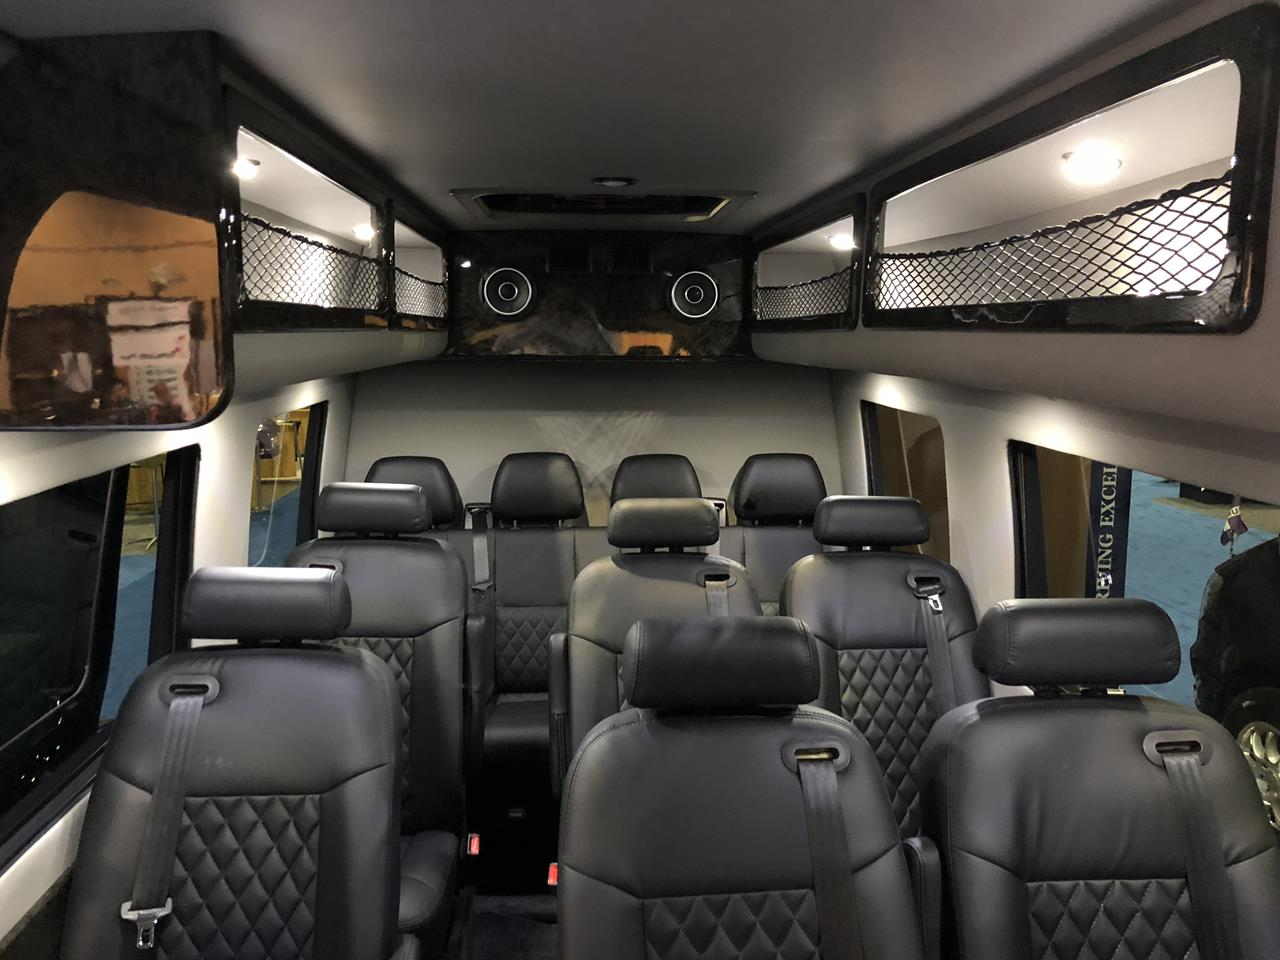 2018 Mercedes Executive Shuttle 14 Passenger Limousine 9